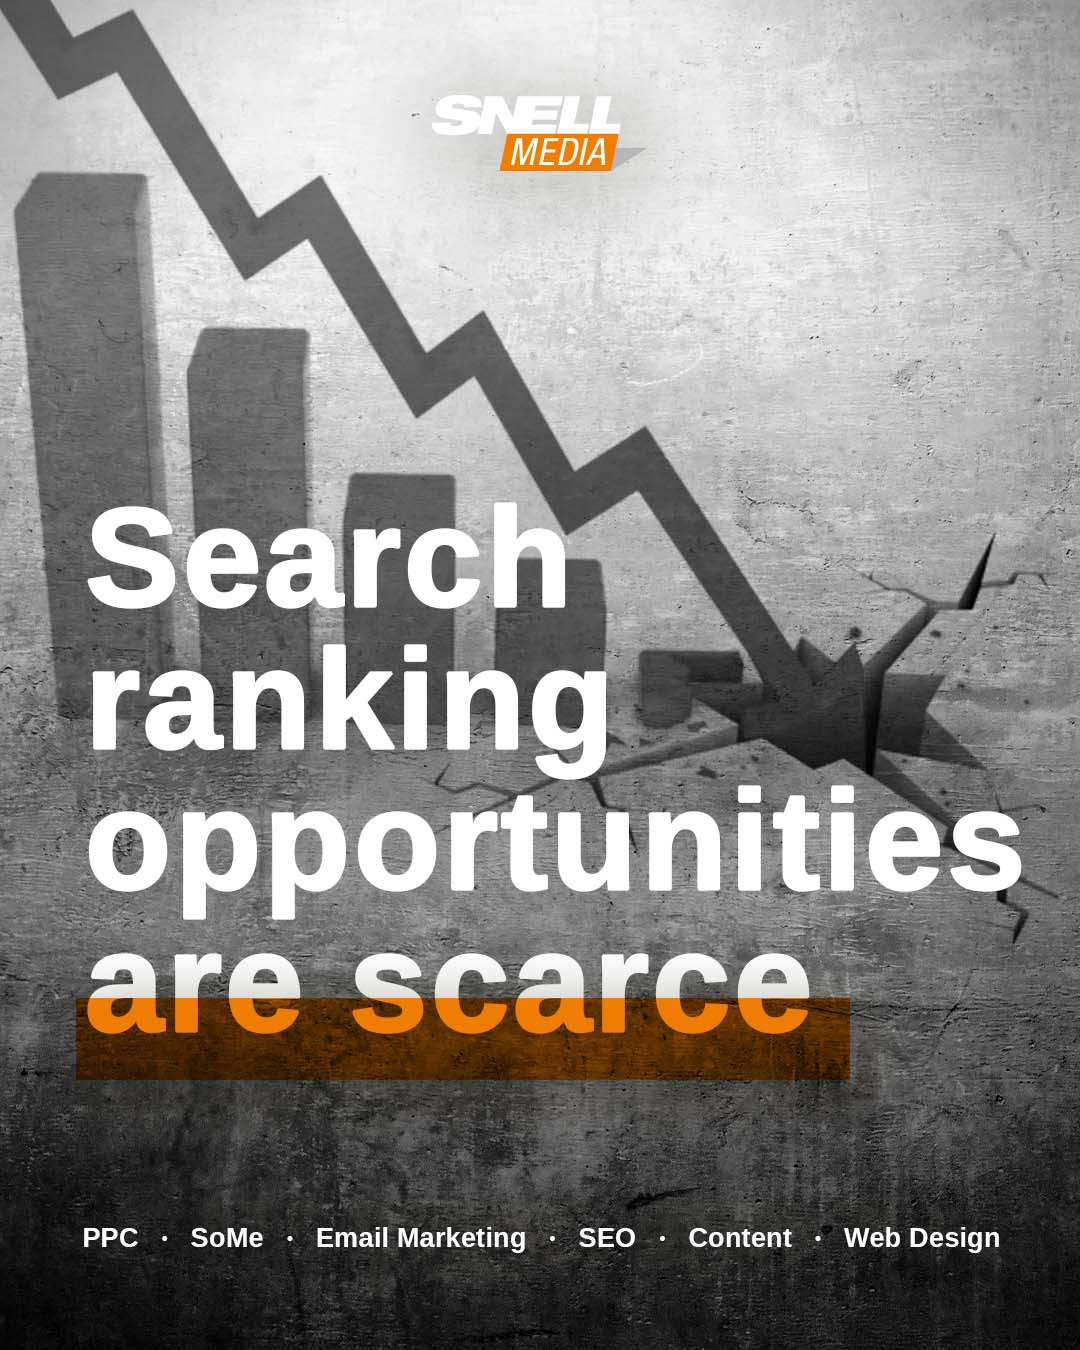 Search Ranking Opportunities are Scarce